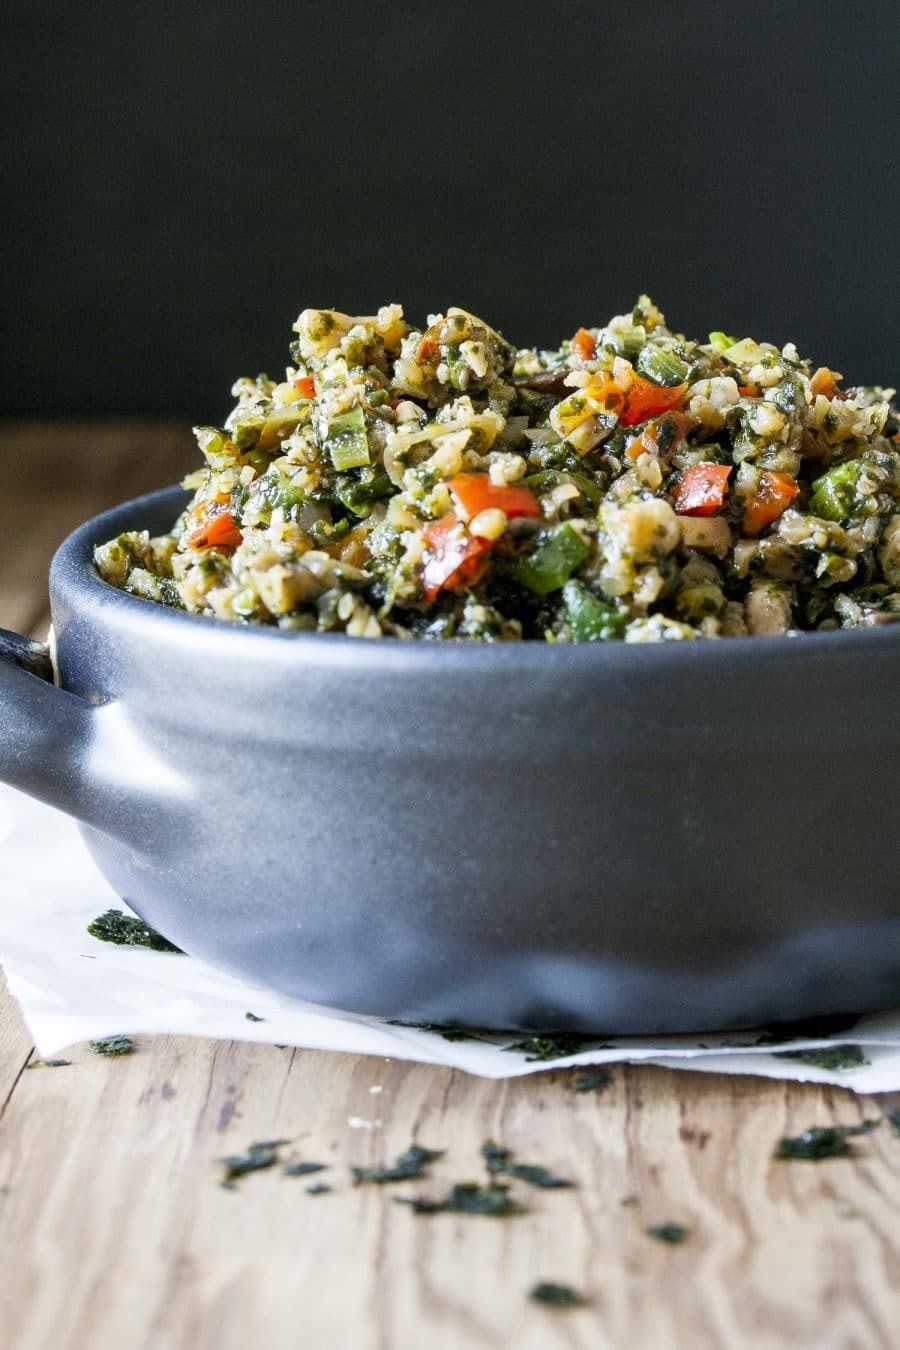 Low Carb Stir Fry Cauliflower Rice (vegan, gluten free)